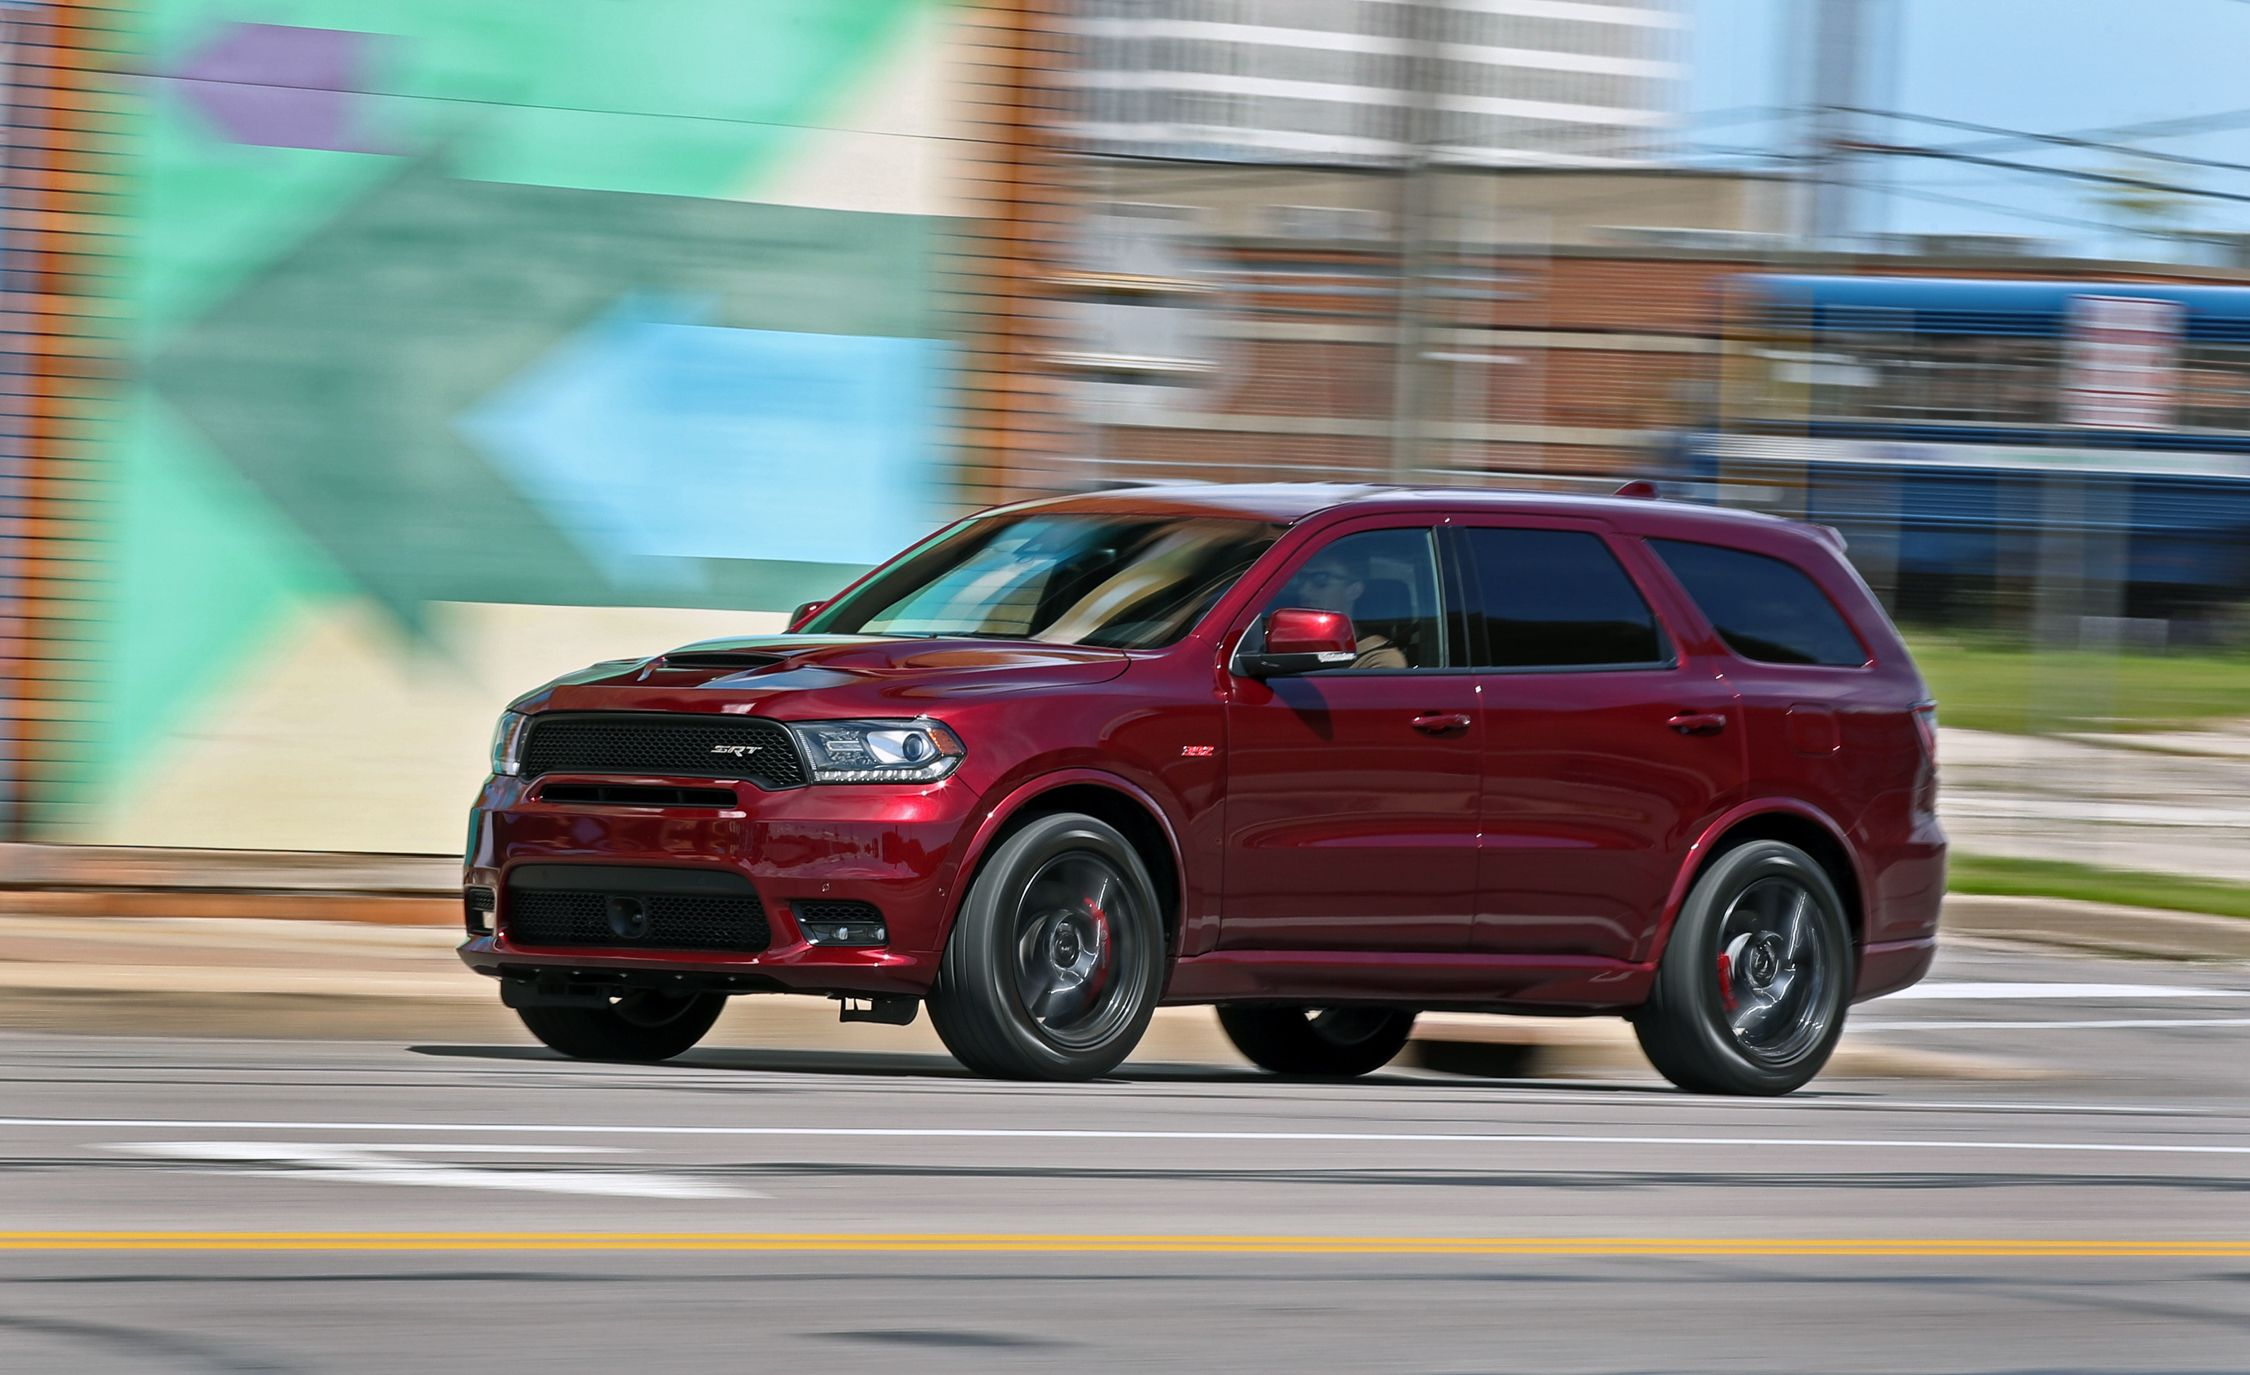 2018 Dodge Durango SRT Pictures | Photo Gallery | Car and ...